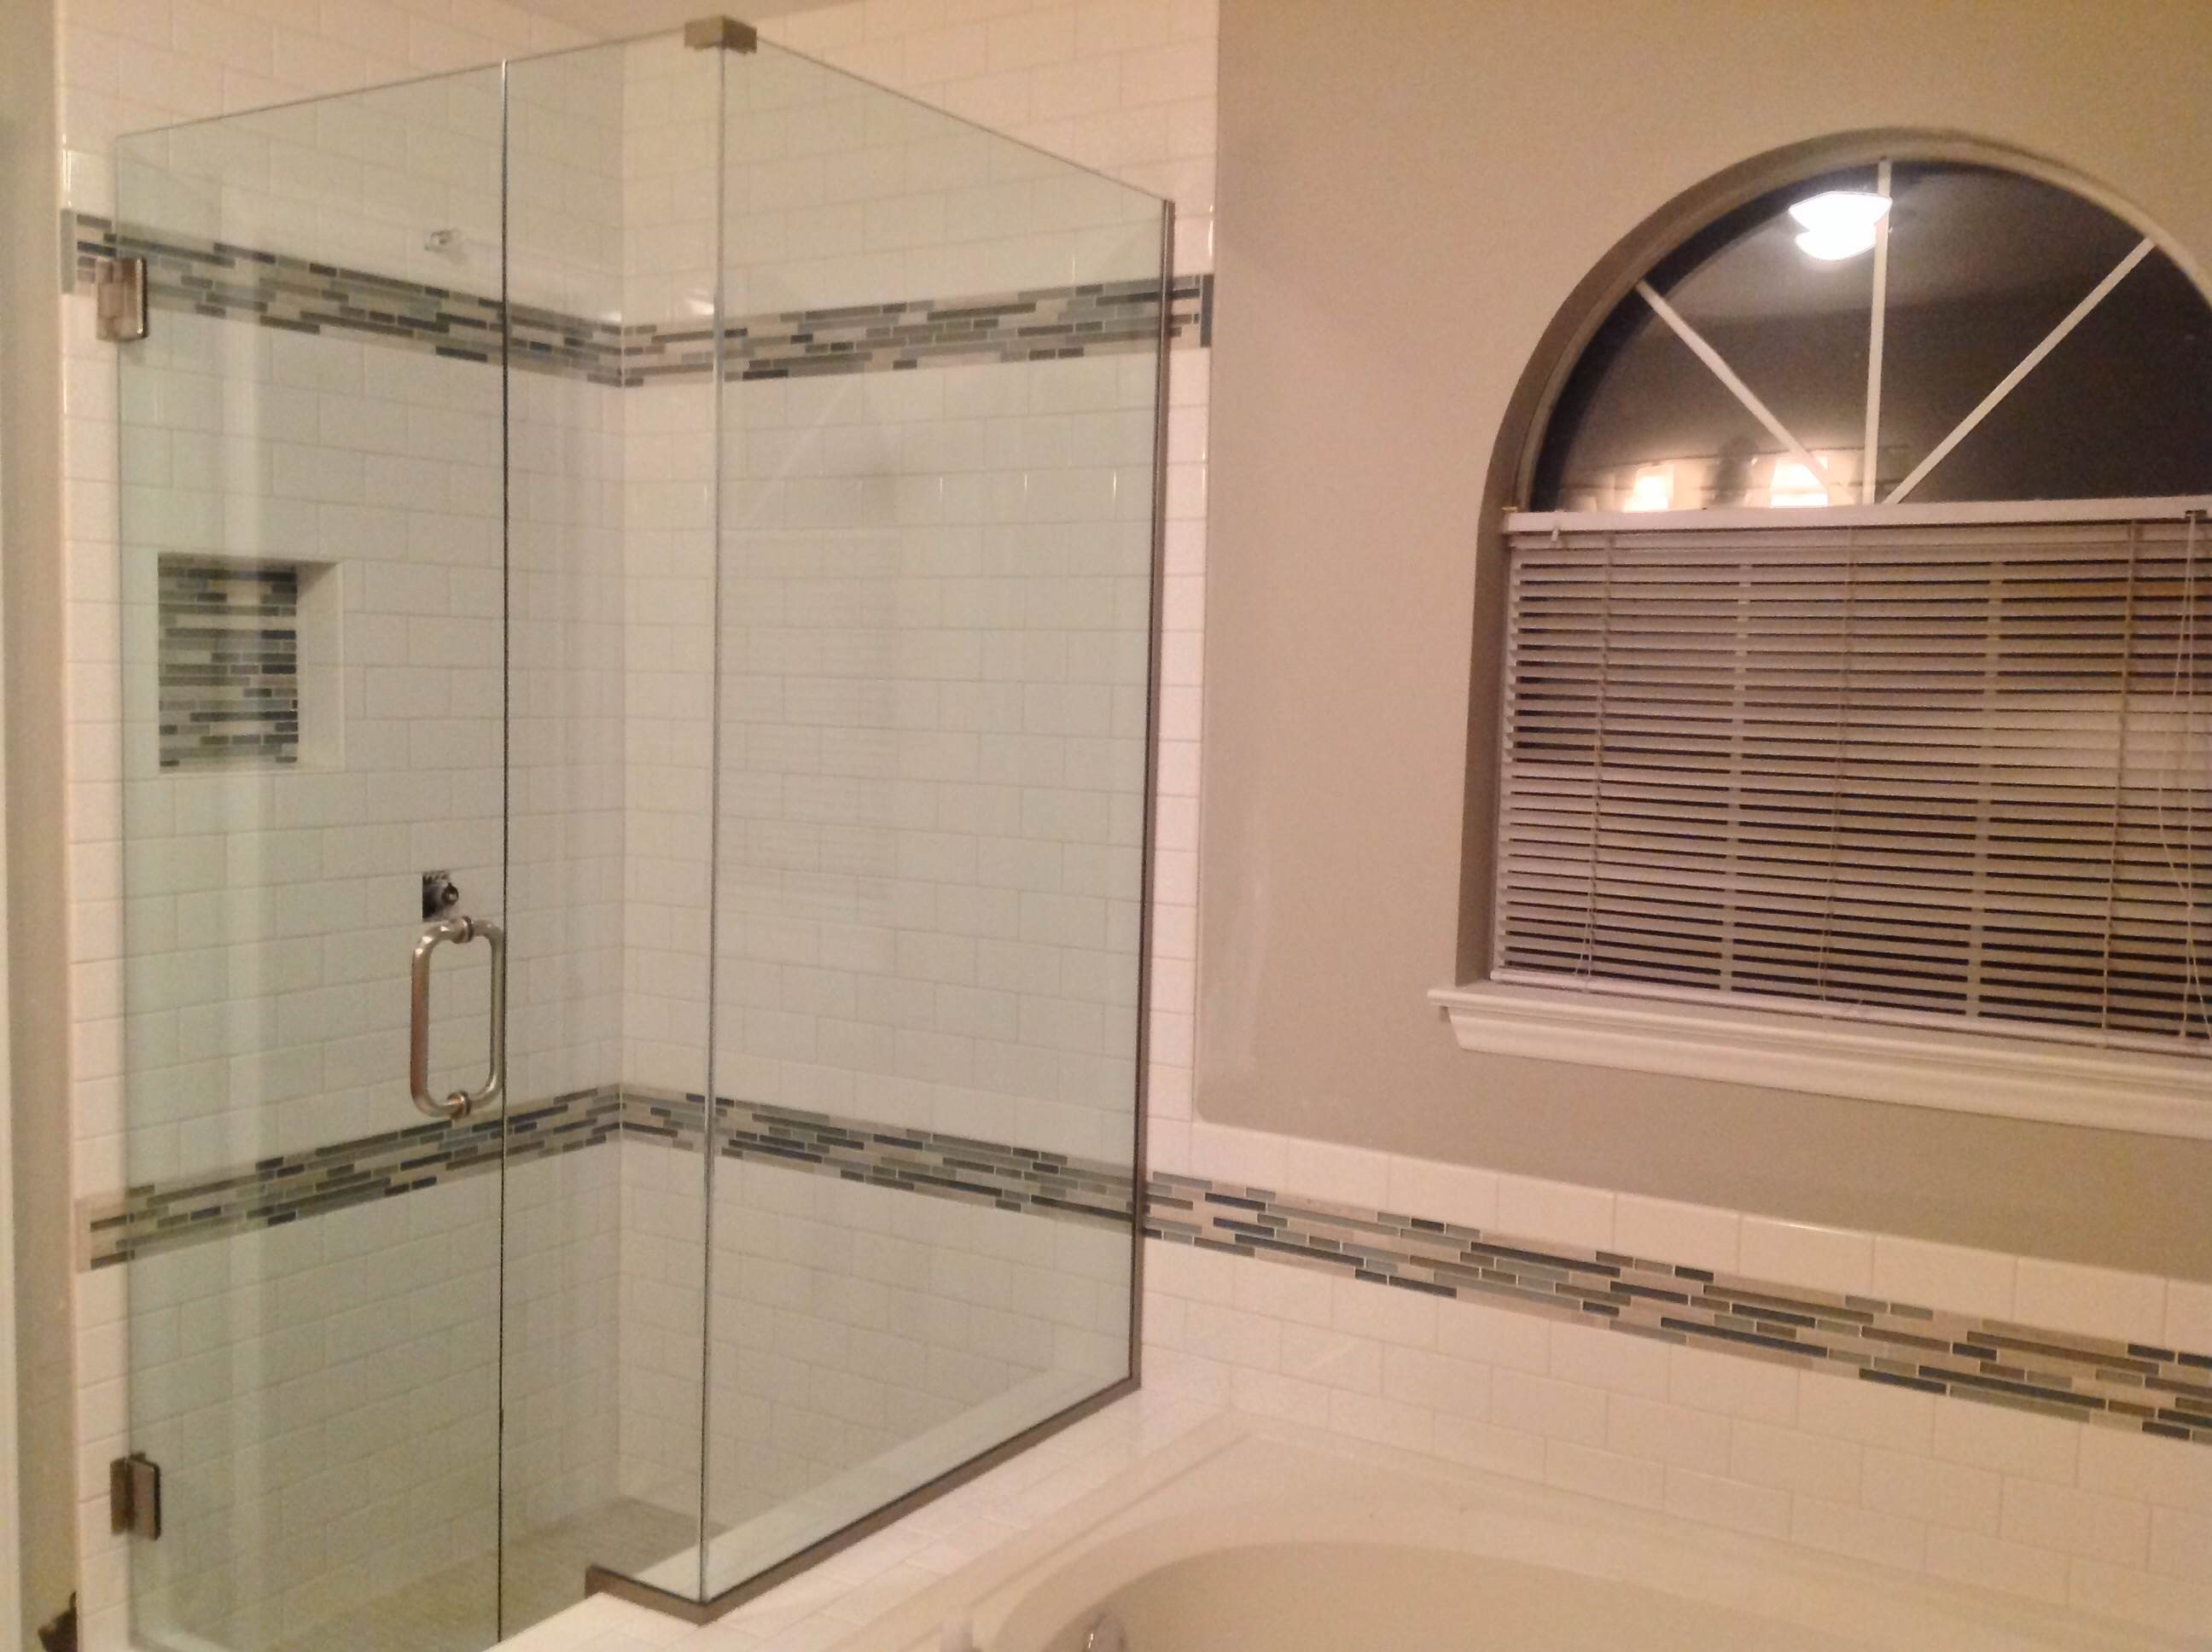 Shower door handles, hinges, towel bars & other shower hardware in ...